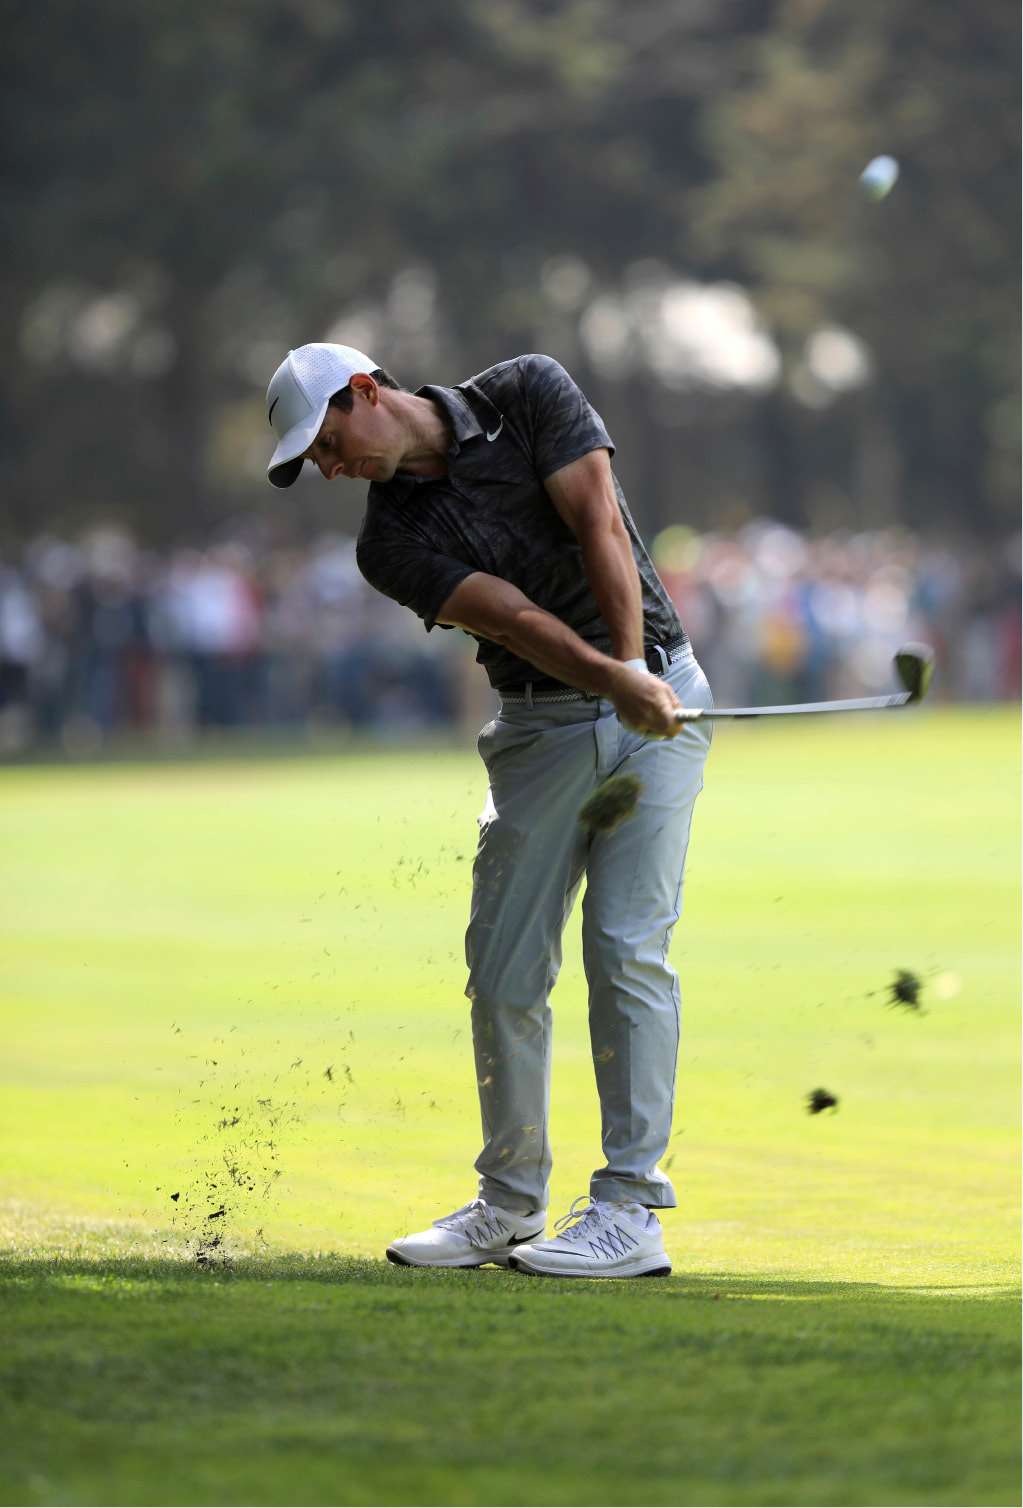 Rory McIlroy, of Northern Ireland, hits the ball on the 4th hole during the final round of the Mexico Championship at Chapultepec Golf Club in Mexico City, Sunday, March 5, 2017. All but one of the world